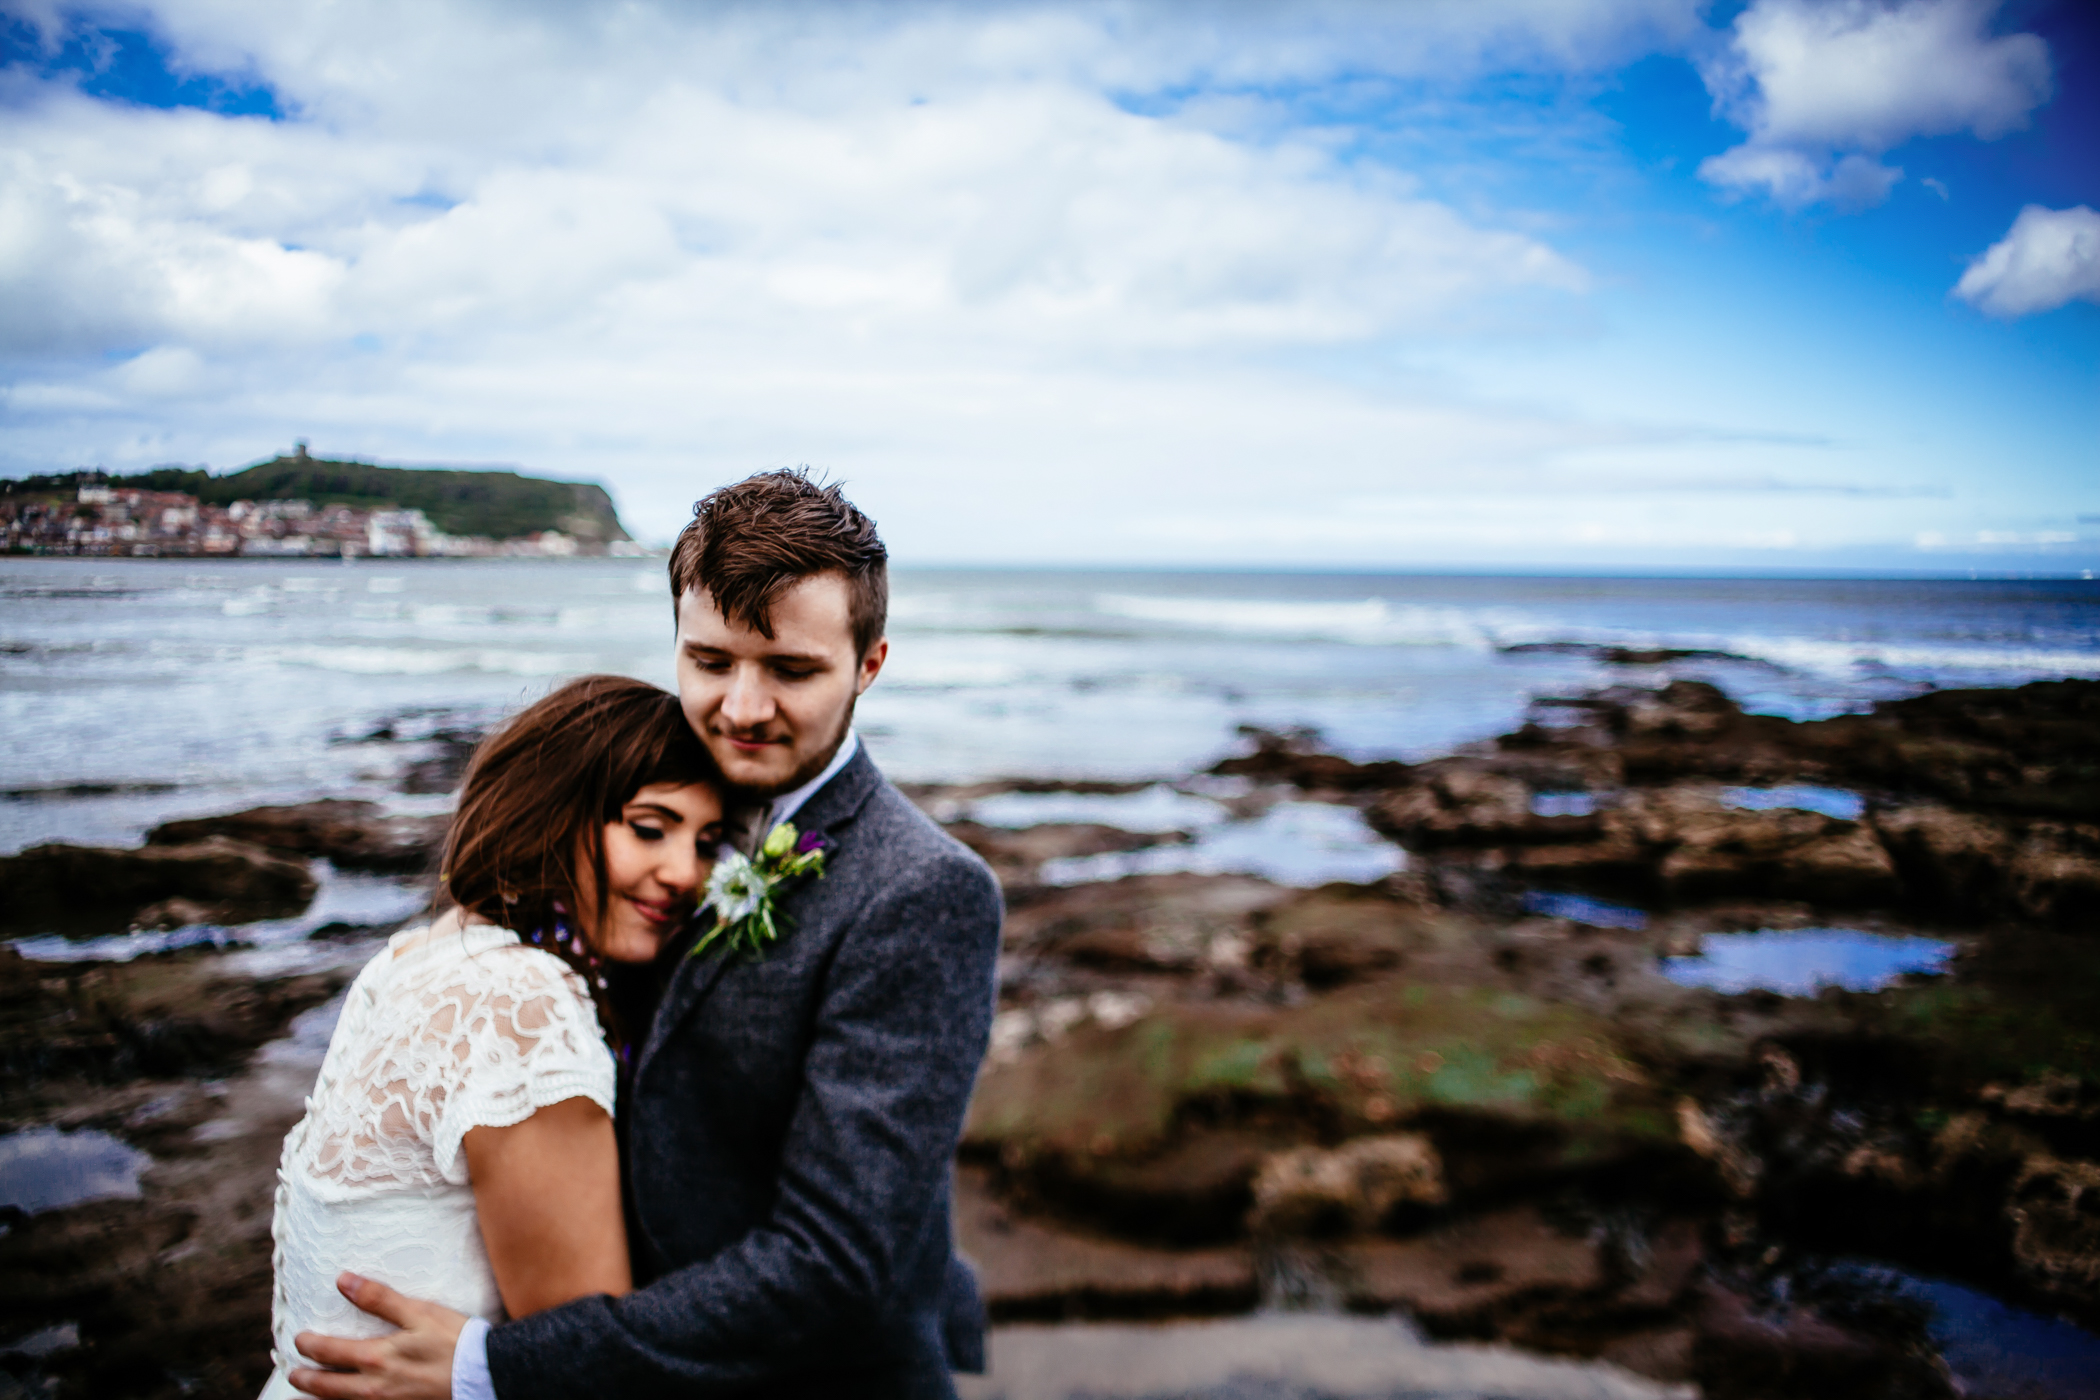 sansom photography beach wedding photography charlotte & mike-19